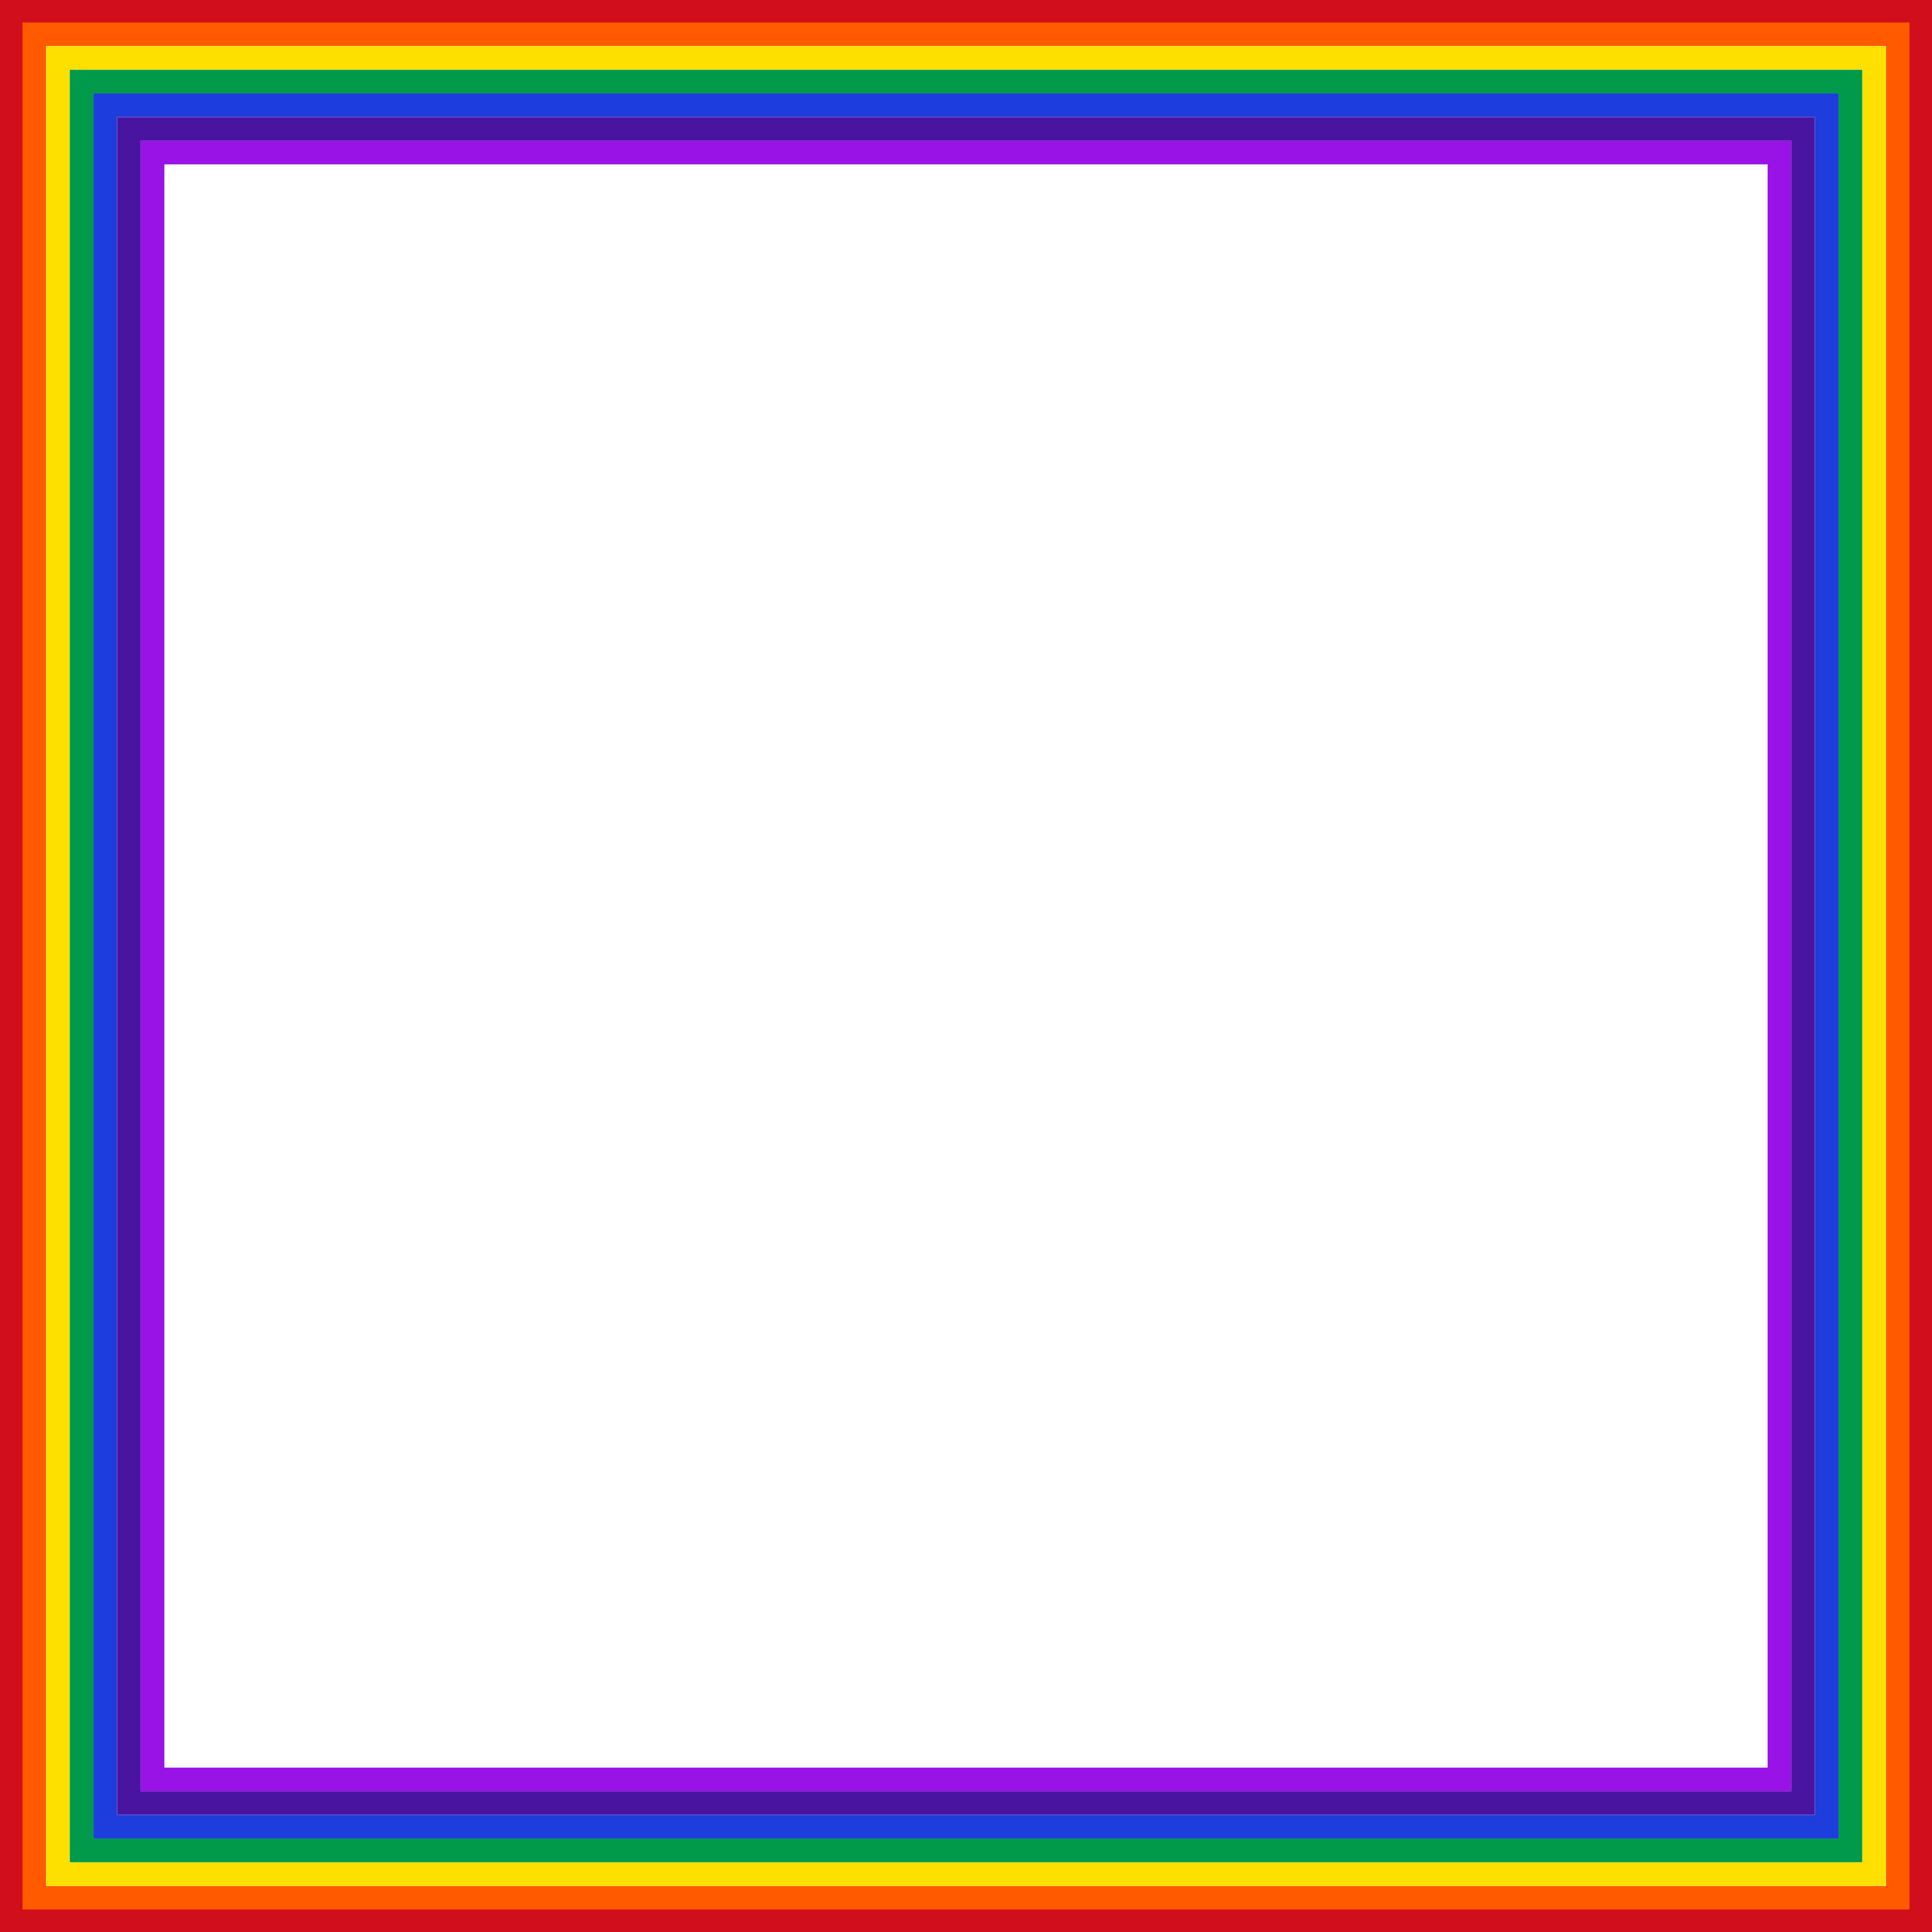 Rainbow big image png. Square clipart square shaped